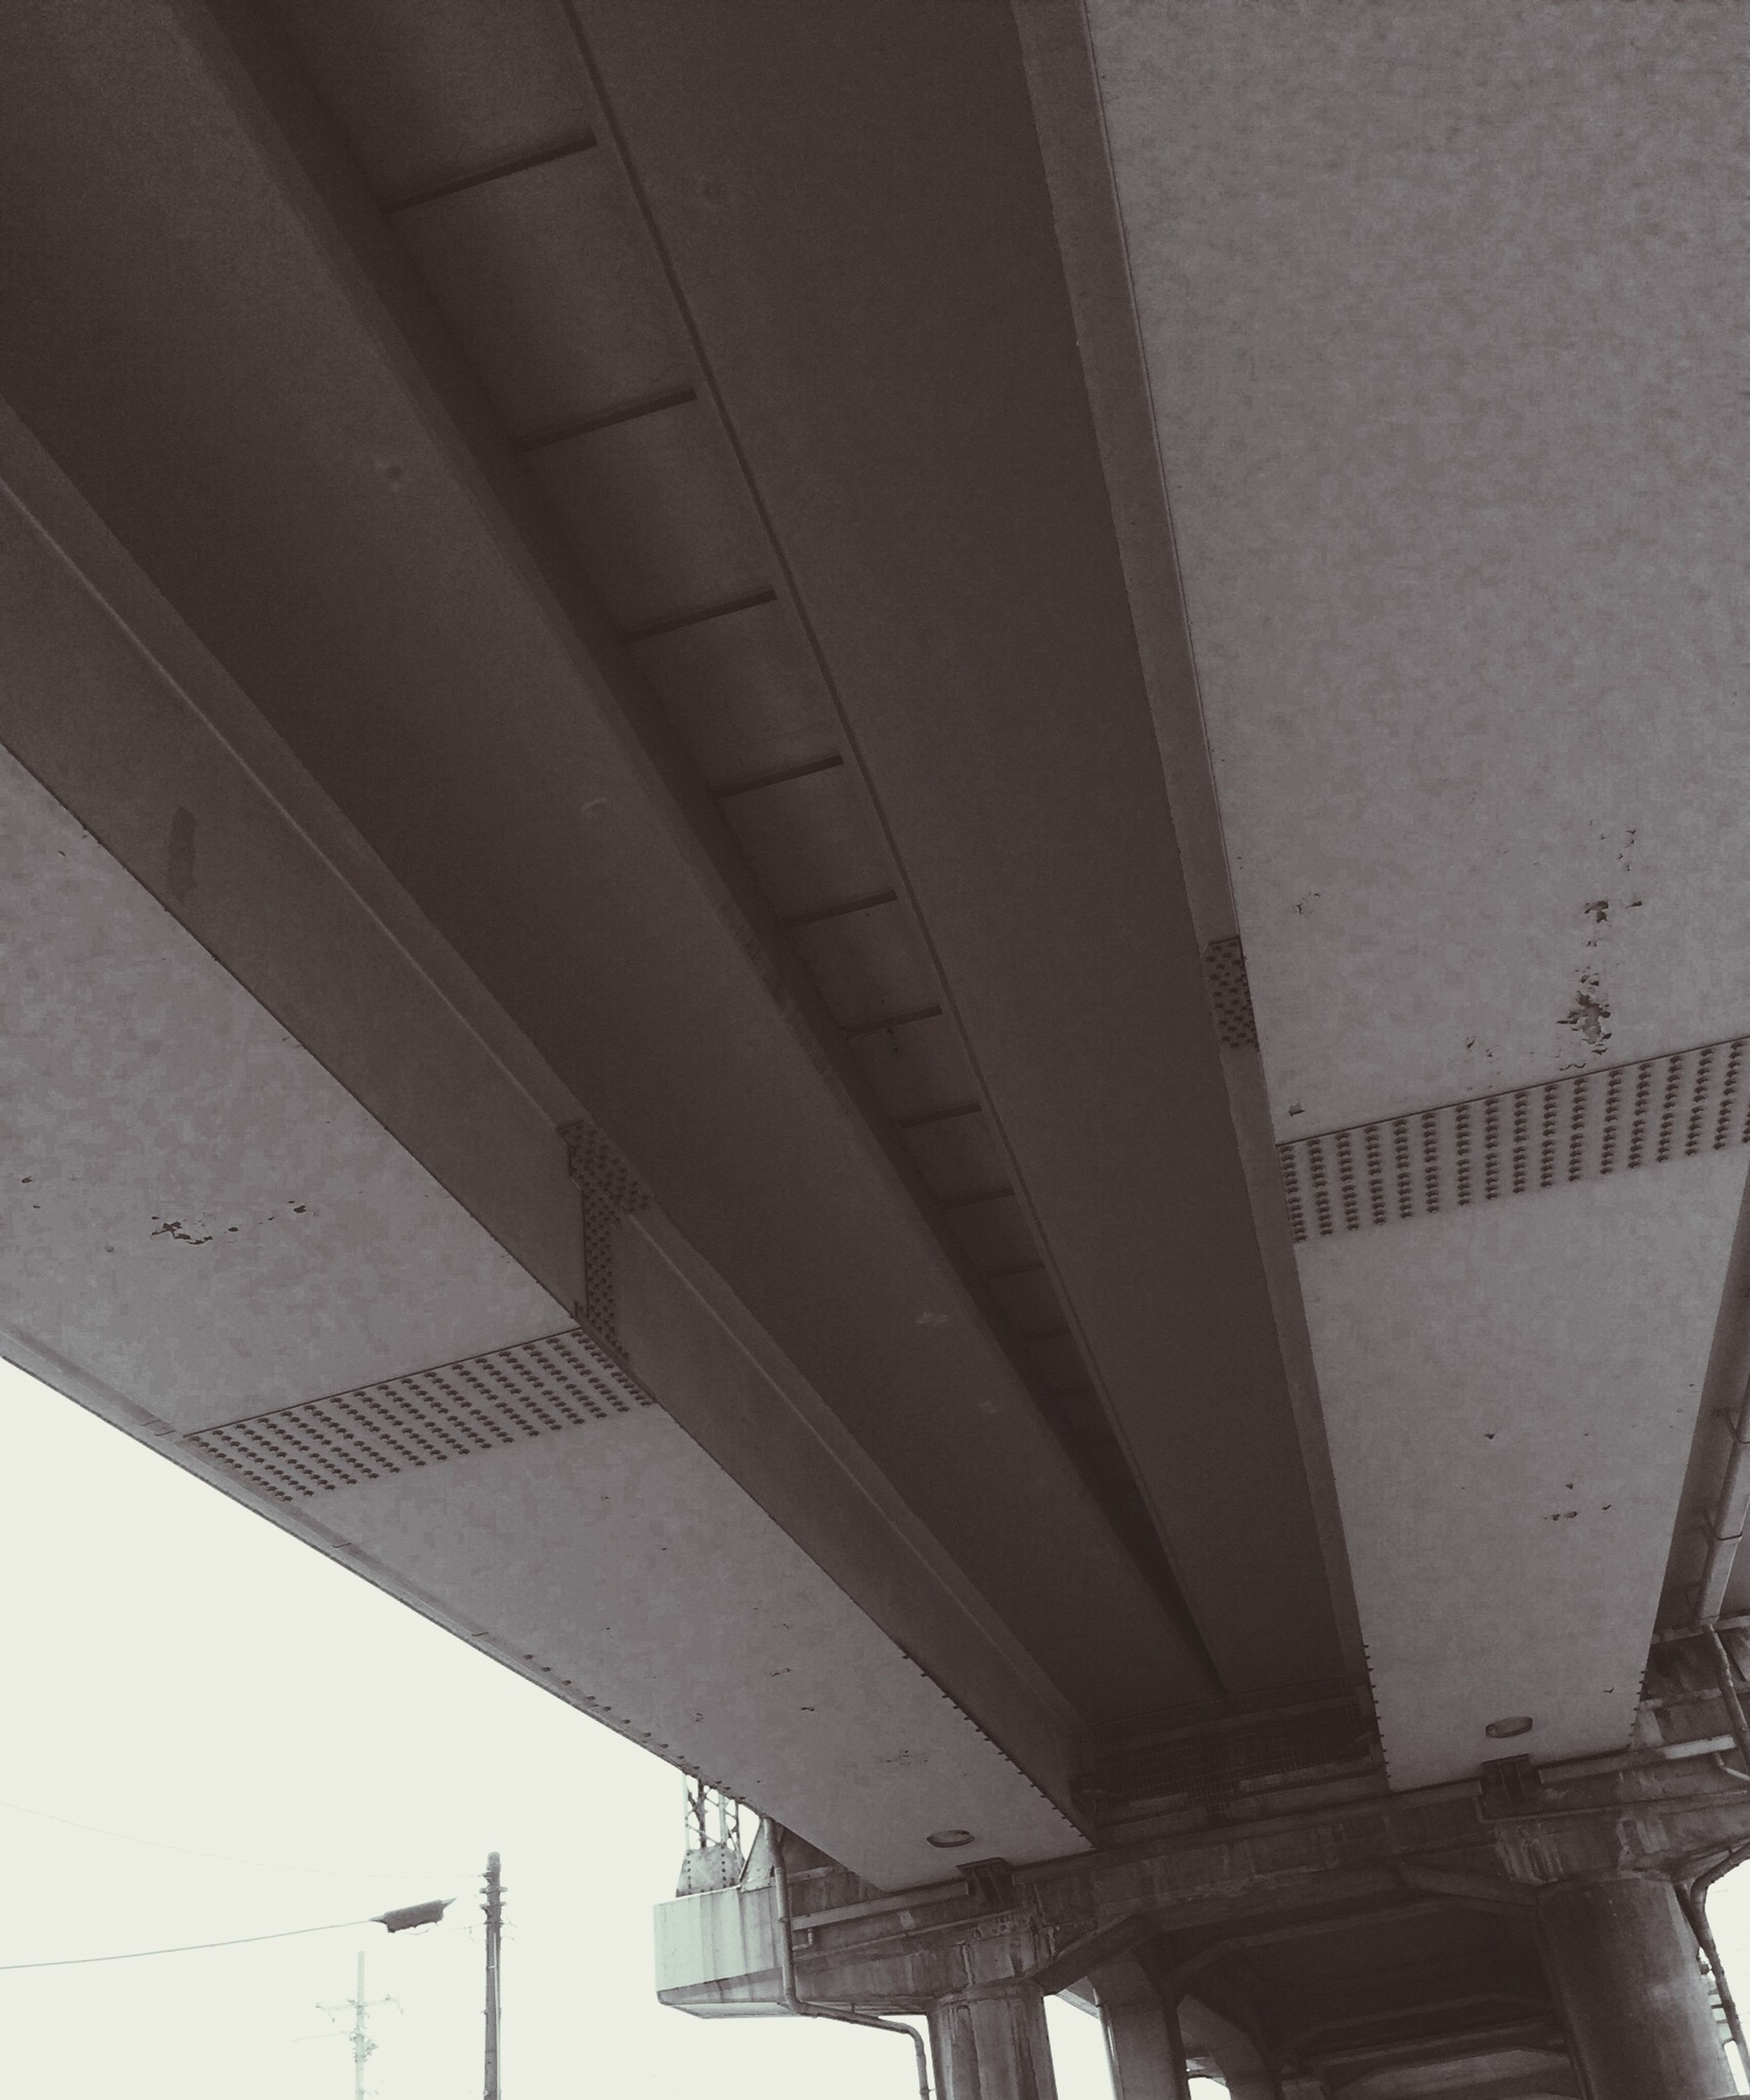 built structure, architecture, low angle view, connection, building exterior, transportation, ceiling, bridge - man made structure, architectural column, day, no people, outdoors, building, engineering, city, sky, modern, clear sky, in a row